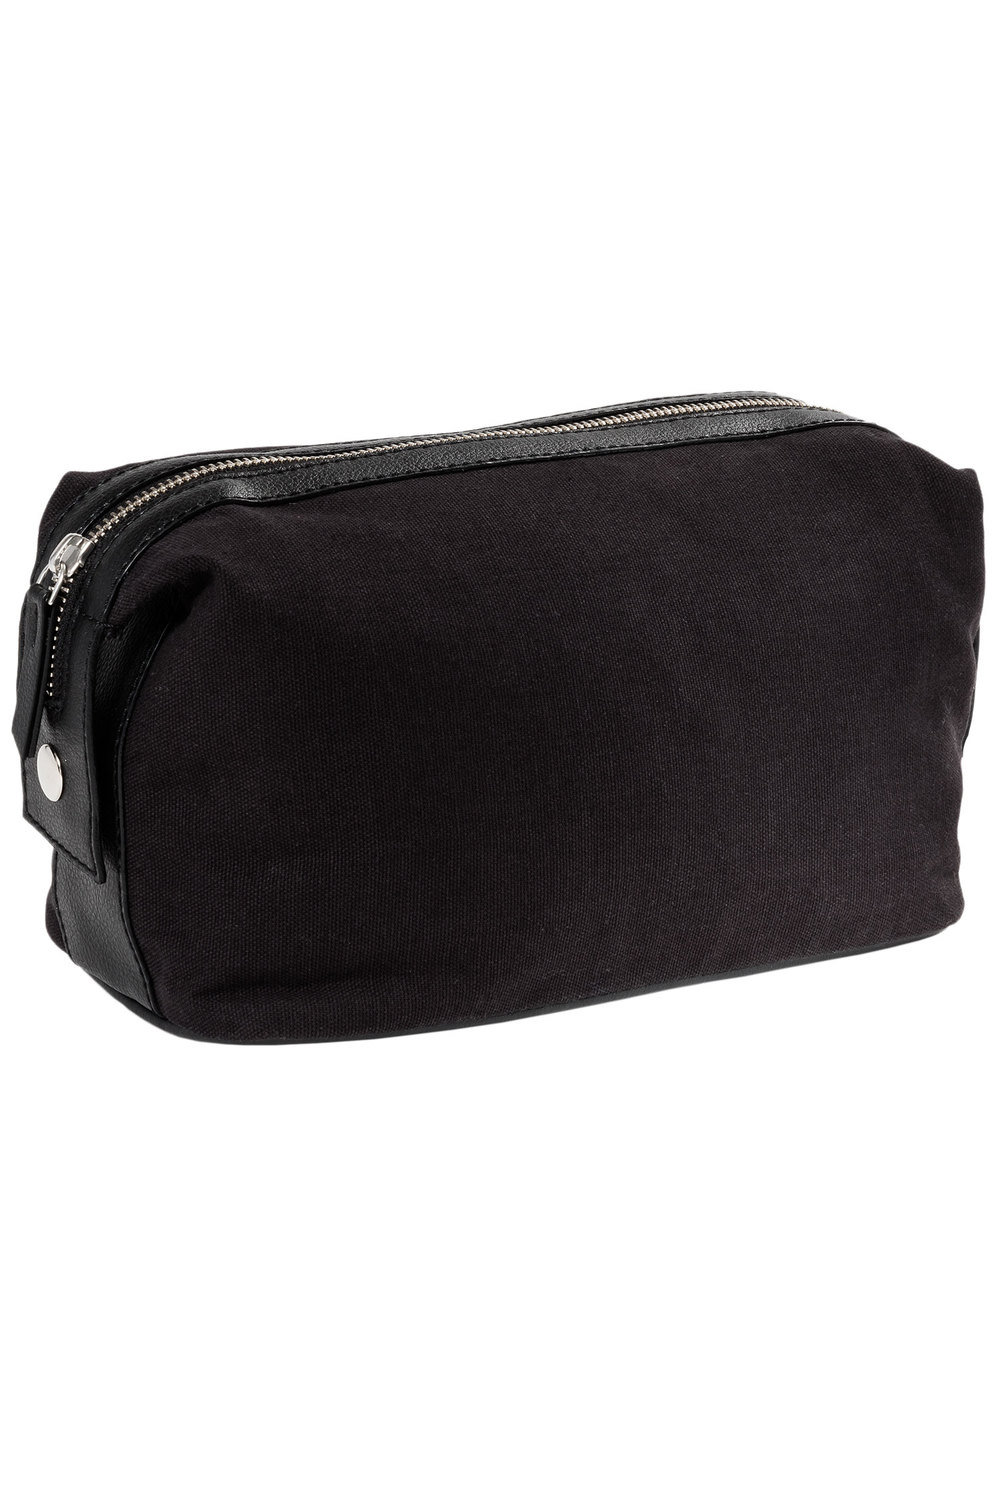 f34e8fa55d9 Mens Toilet Bag Online